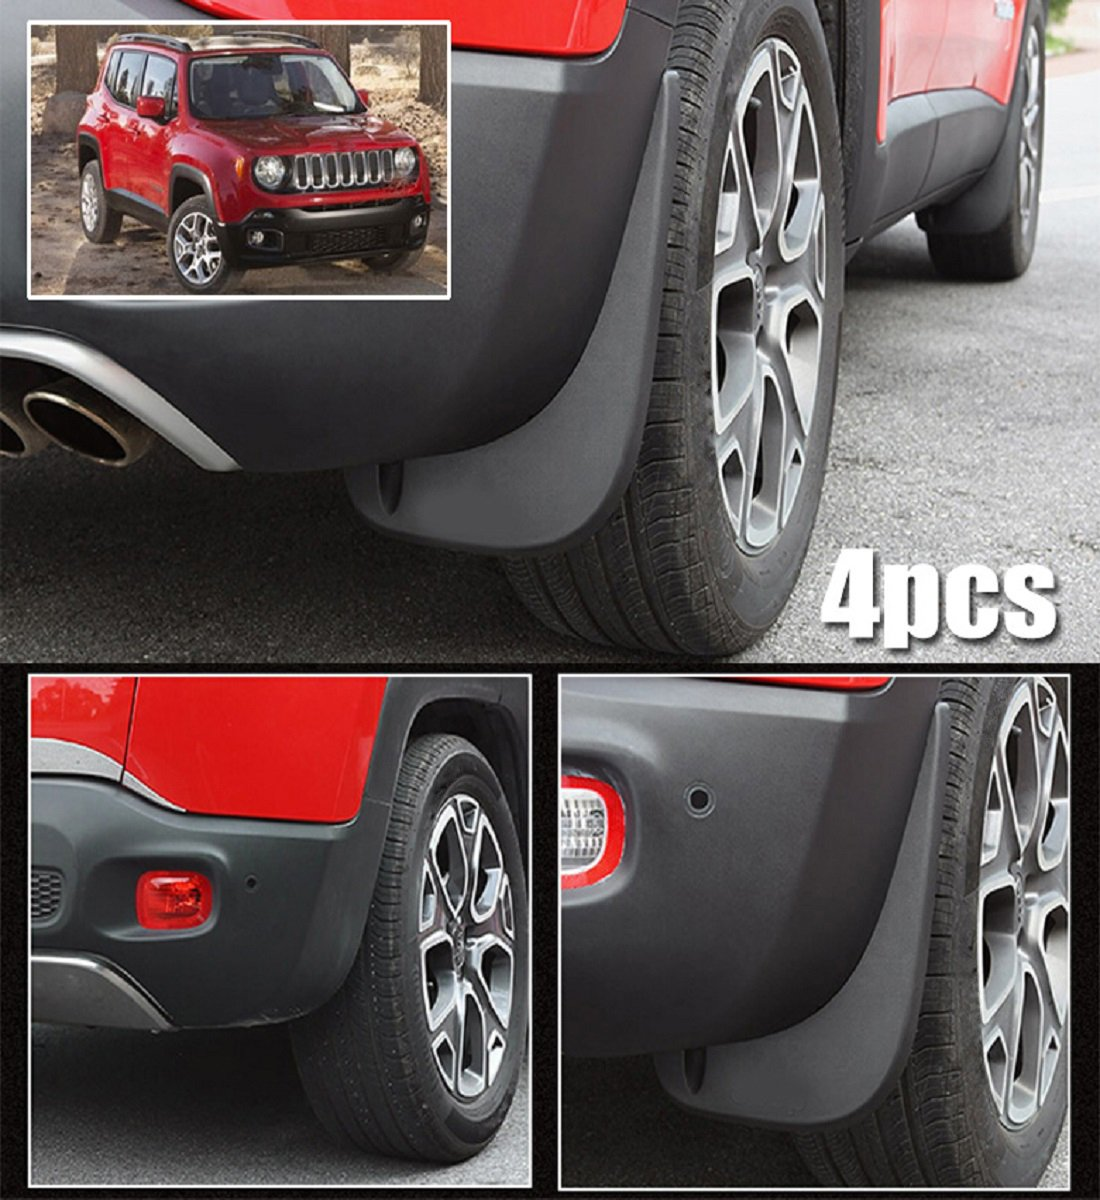 biosp Auto Mud Flaps Splash Guards For Jeep Renegade 2015 2016 2017 2018 2019 Front and Rear Fender Cover-Custom Fit Black ABS Molded 4Pcs Set